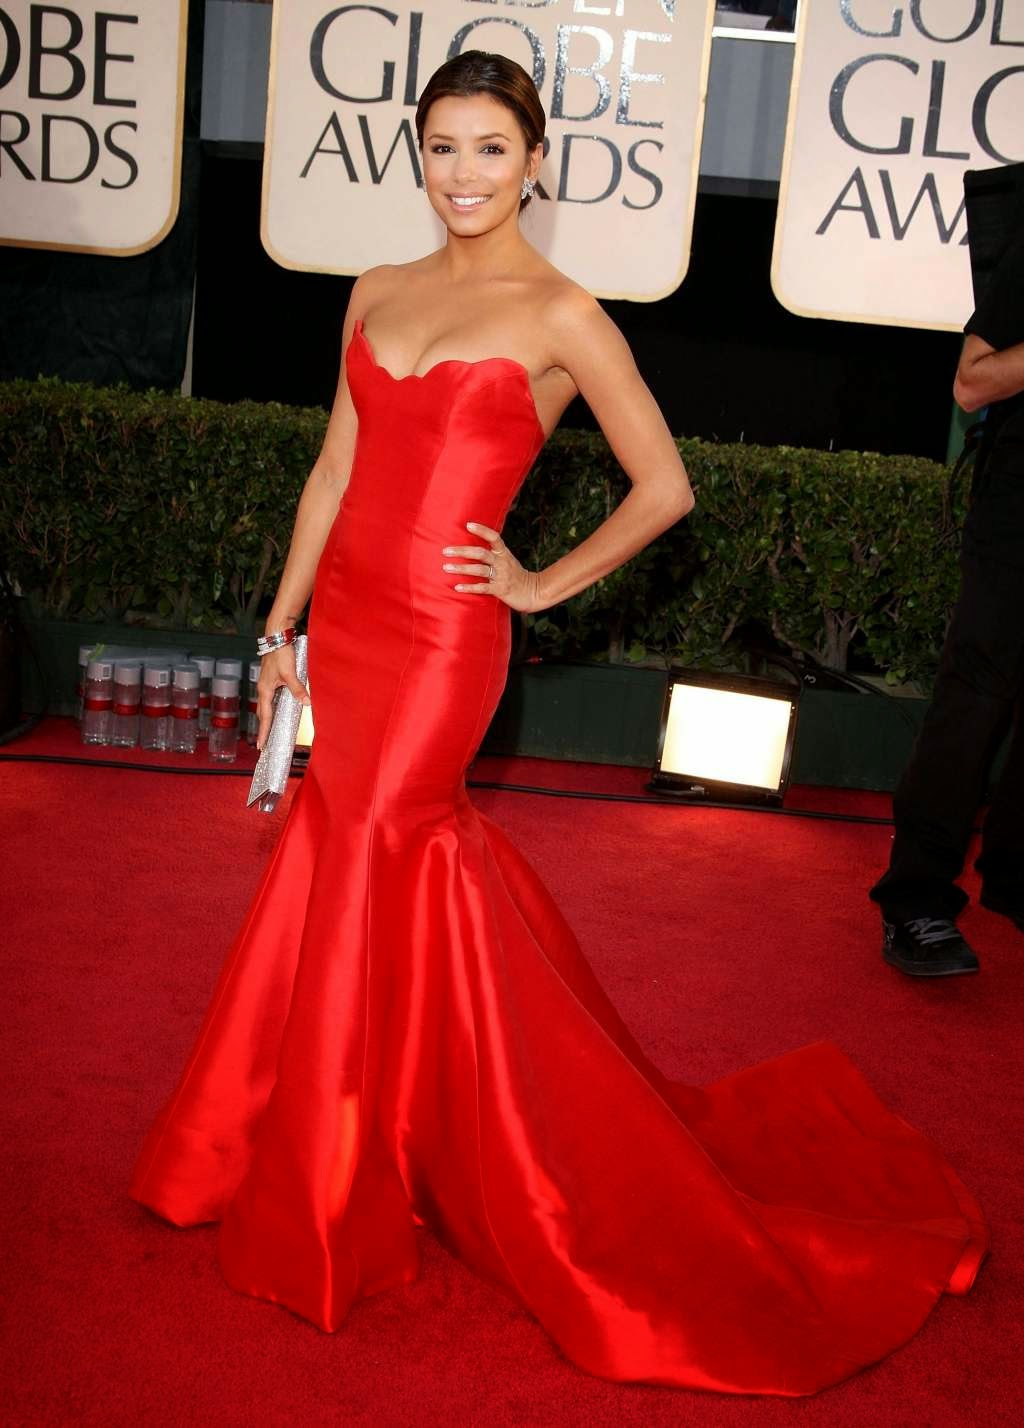 Top 10 Most Beautiful Celebrity In A Red Dress